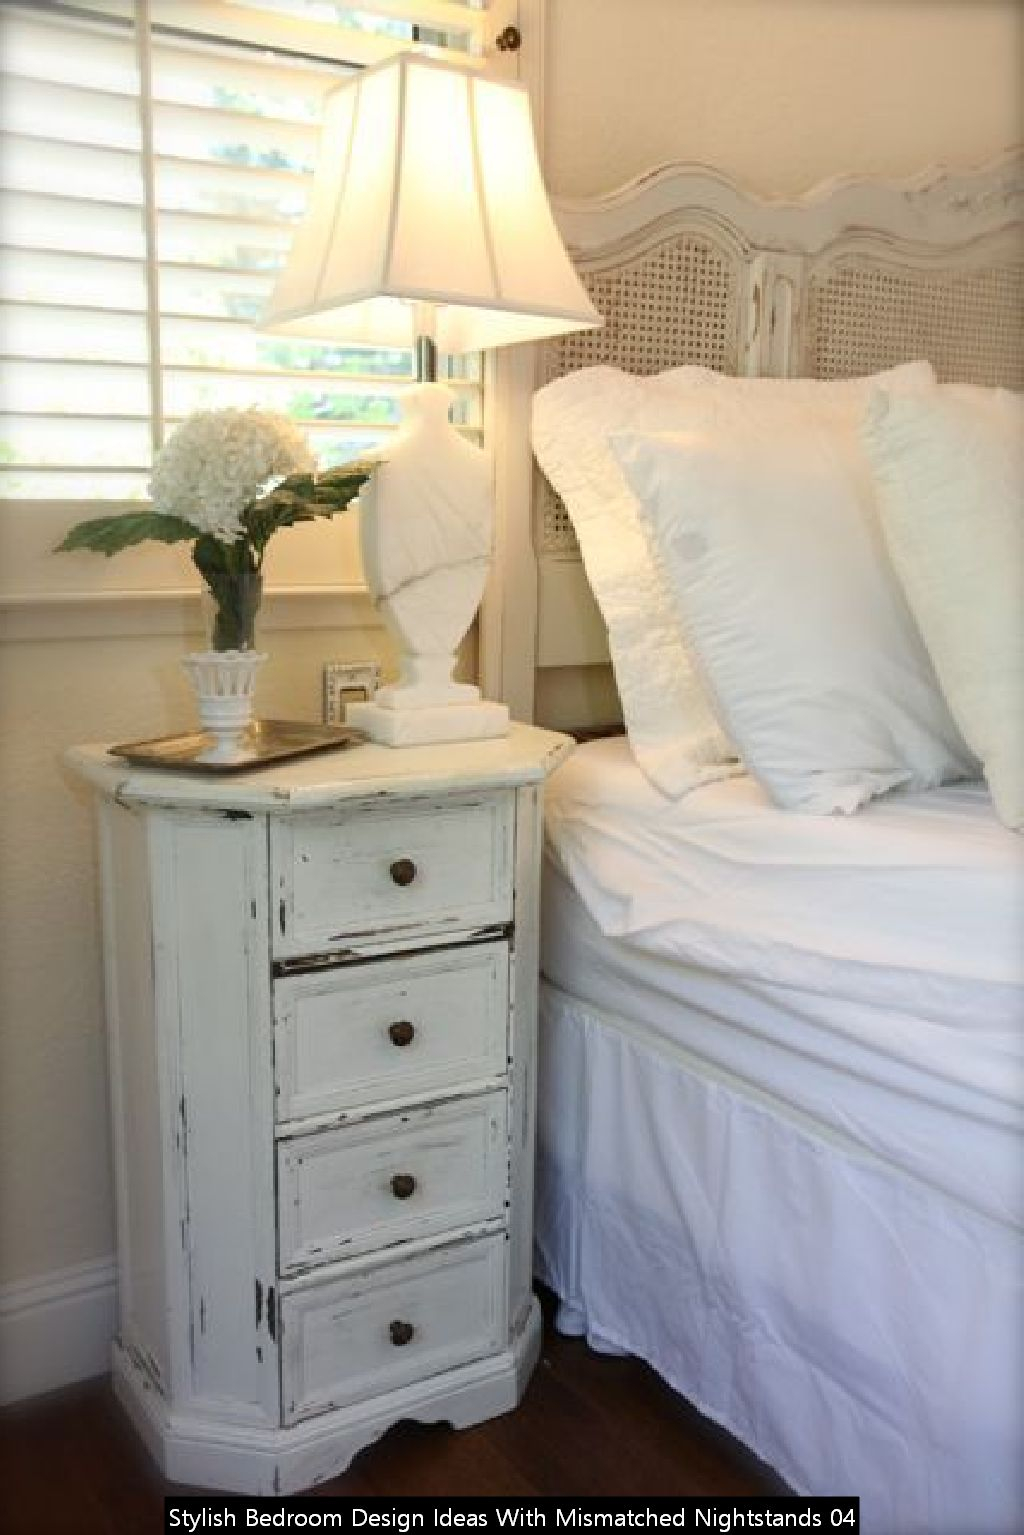 Stylish Bedroom Design Ideas With Mismatched Nightstands 04